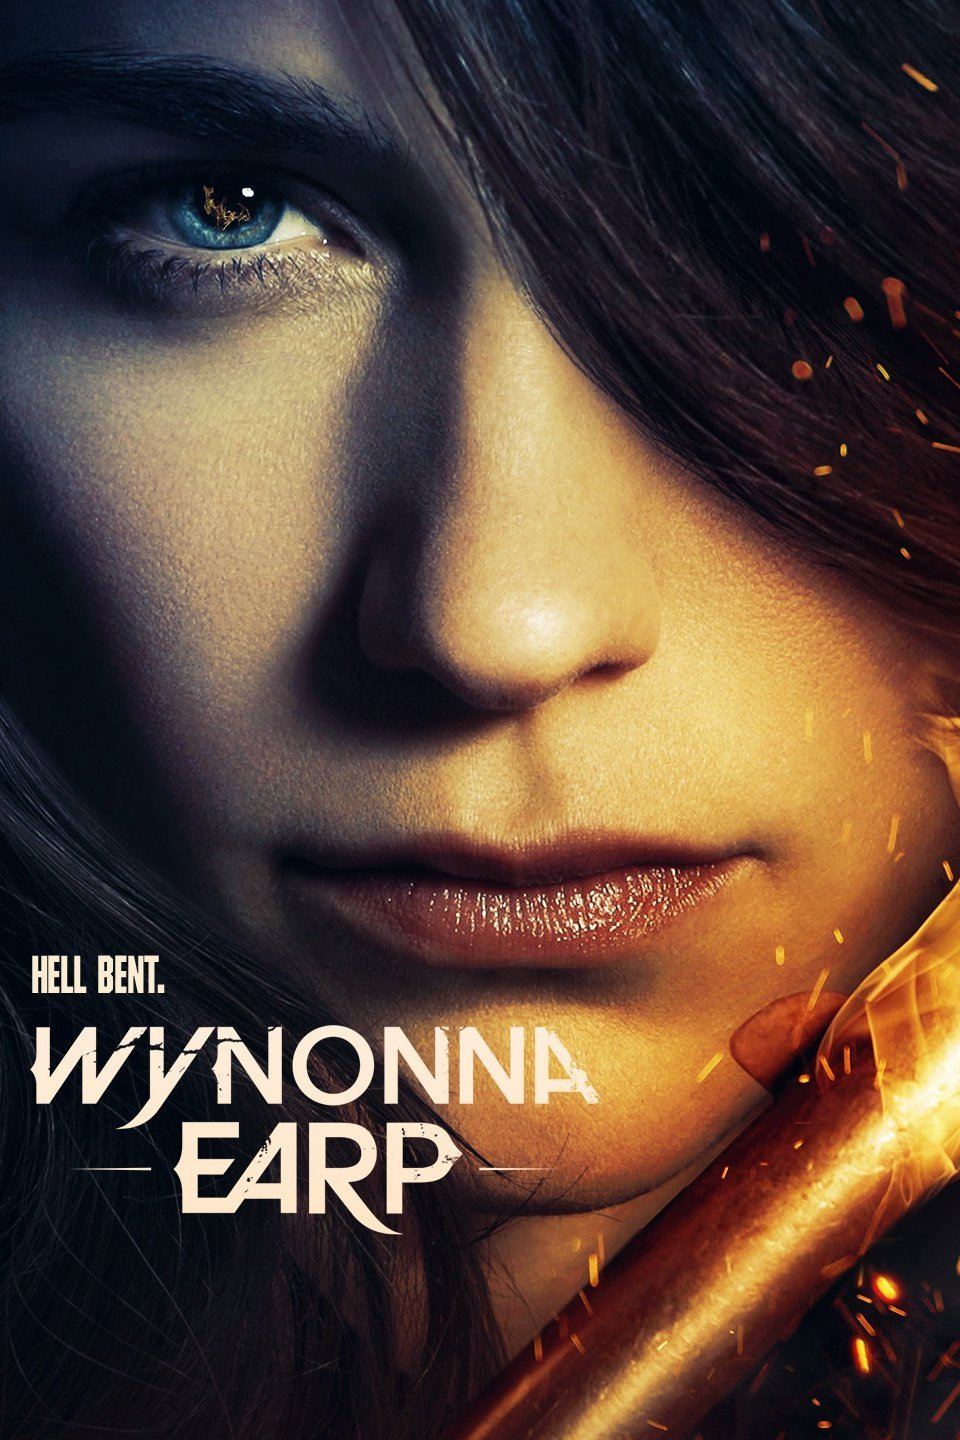 Wynonna Earp Season 3 Episode 1 Download HDTV 480p & 720p